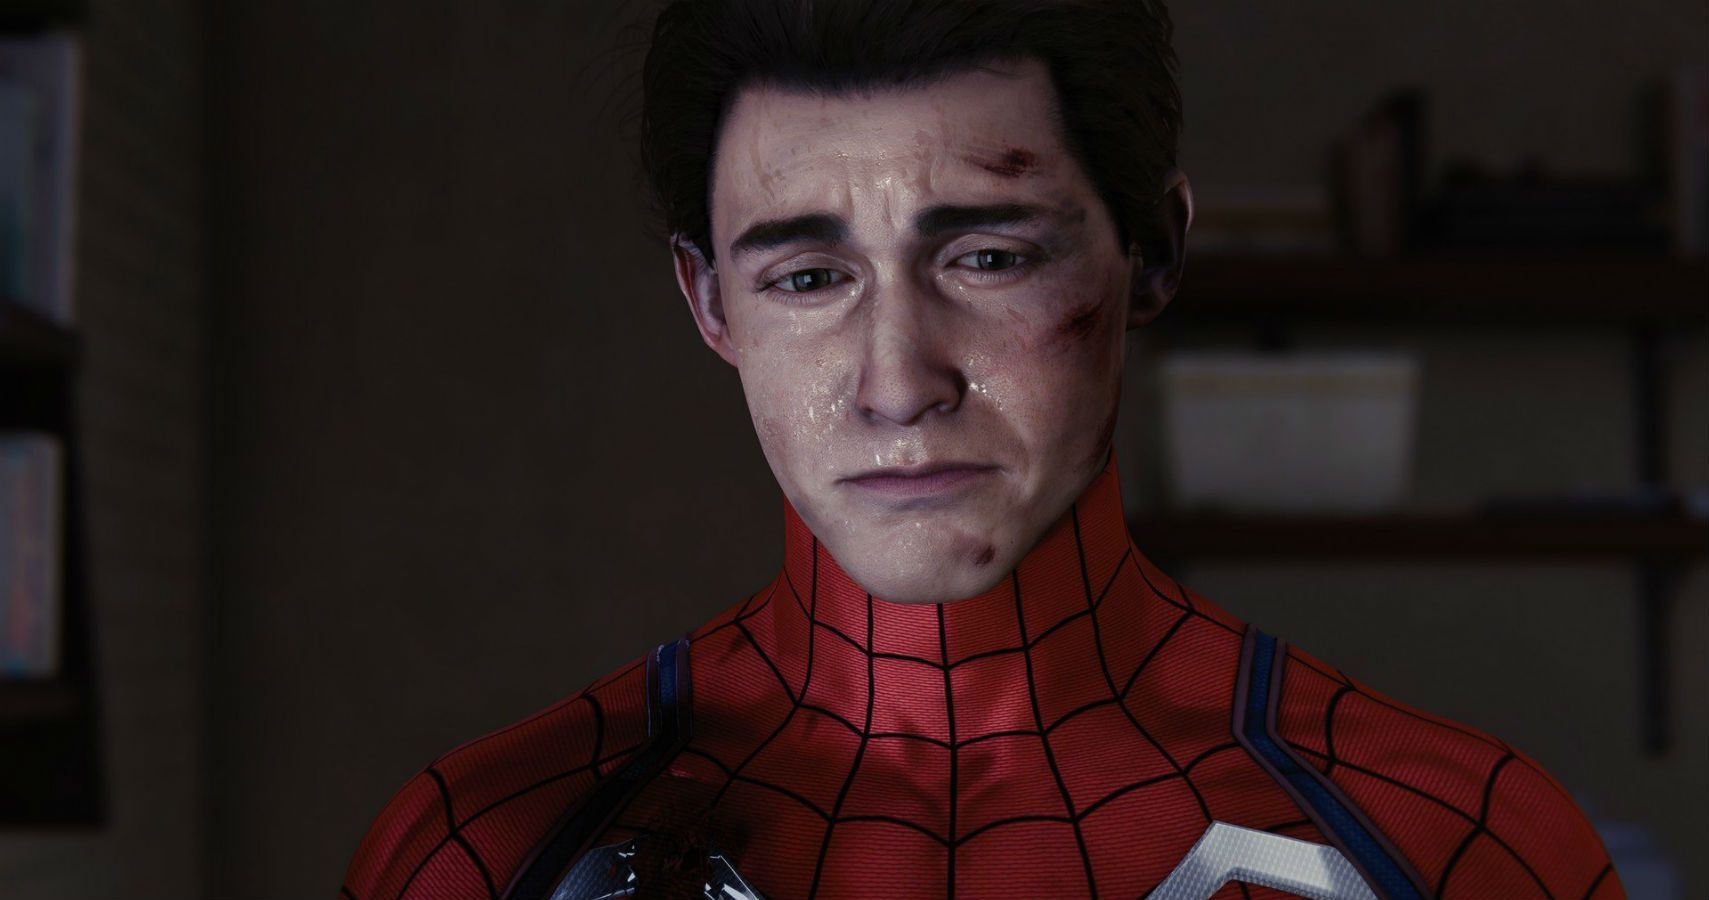 Marvel's Spider-Man Remaster's New Peter Parker Takes All The Emotion Out Of A Pivotal Scene